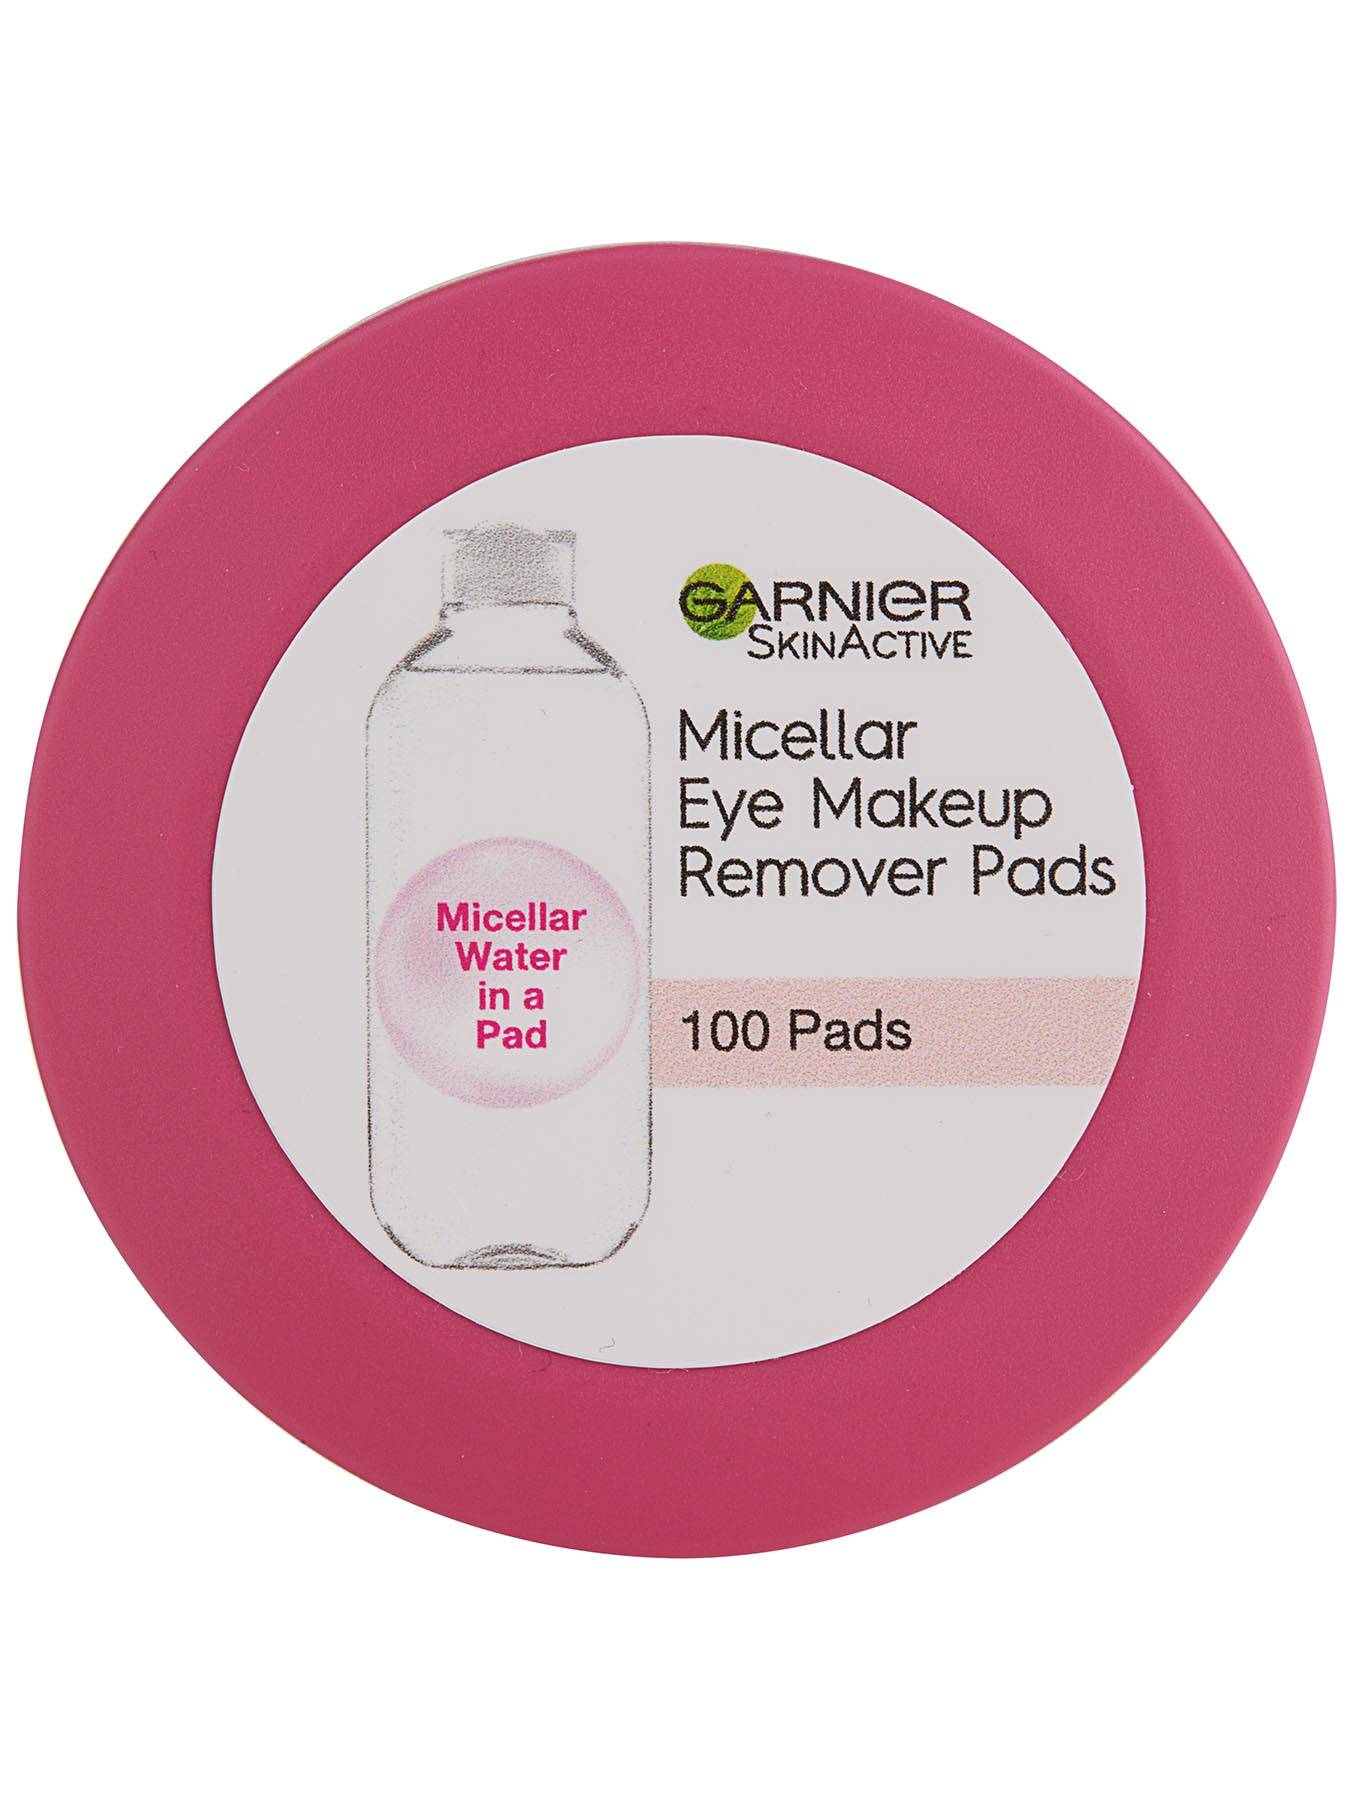 Top view of Micellar Eye Makeup Remover Pads.